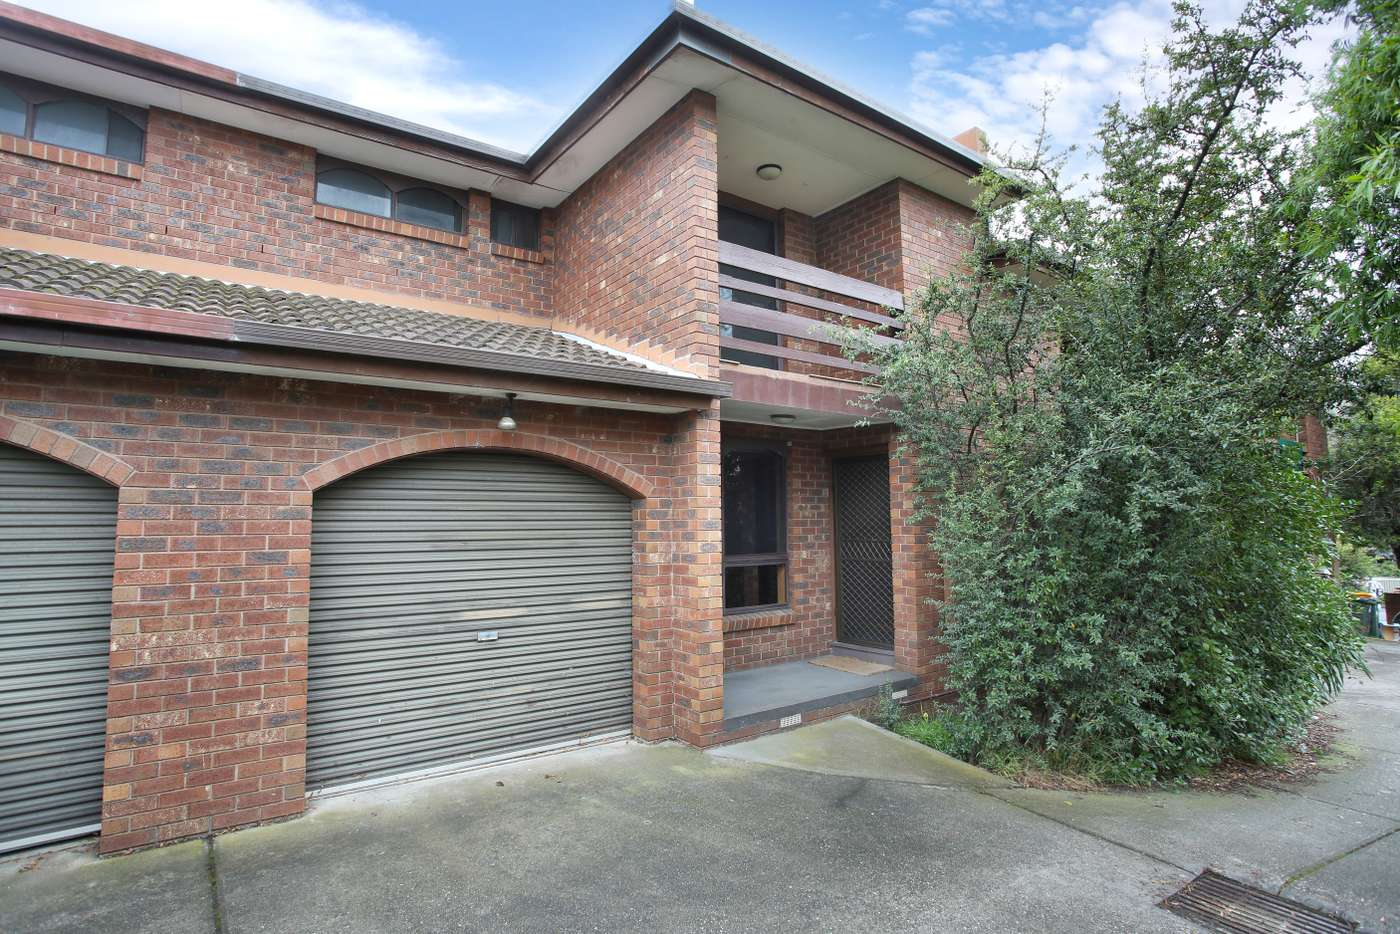 Main view of Homely apartment listing, 3/33 Shaftsbury Street, Brunswick VIC 3056